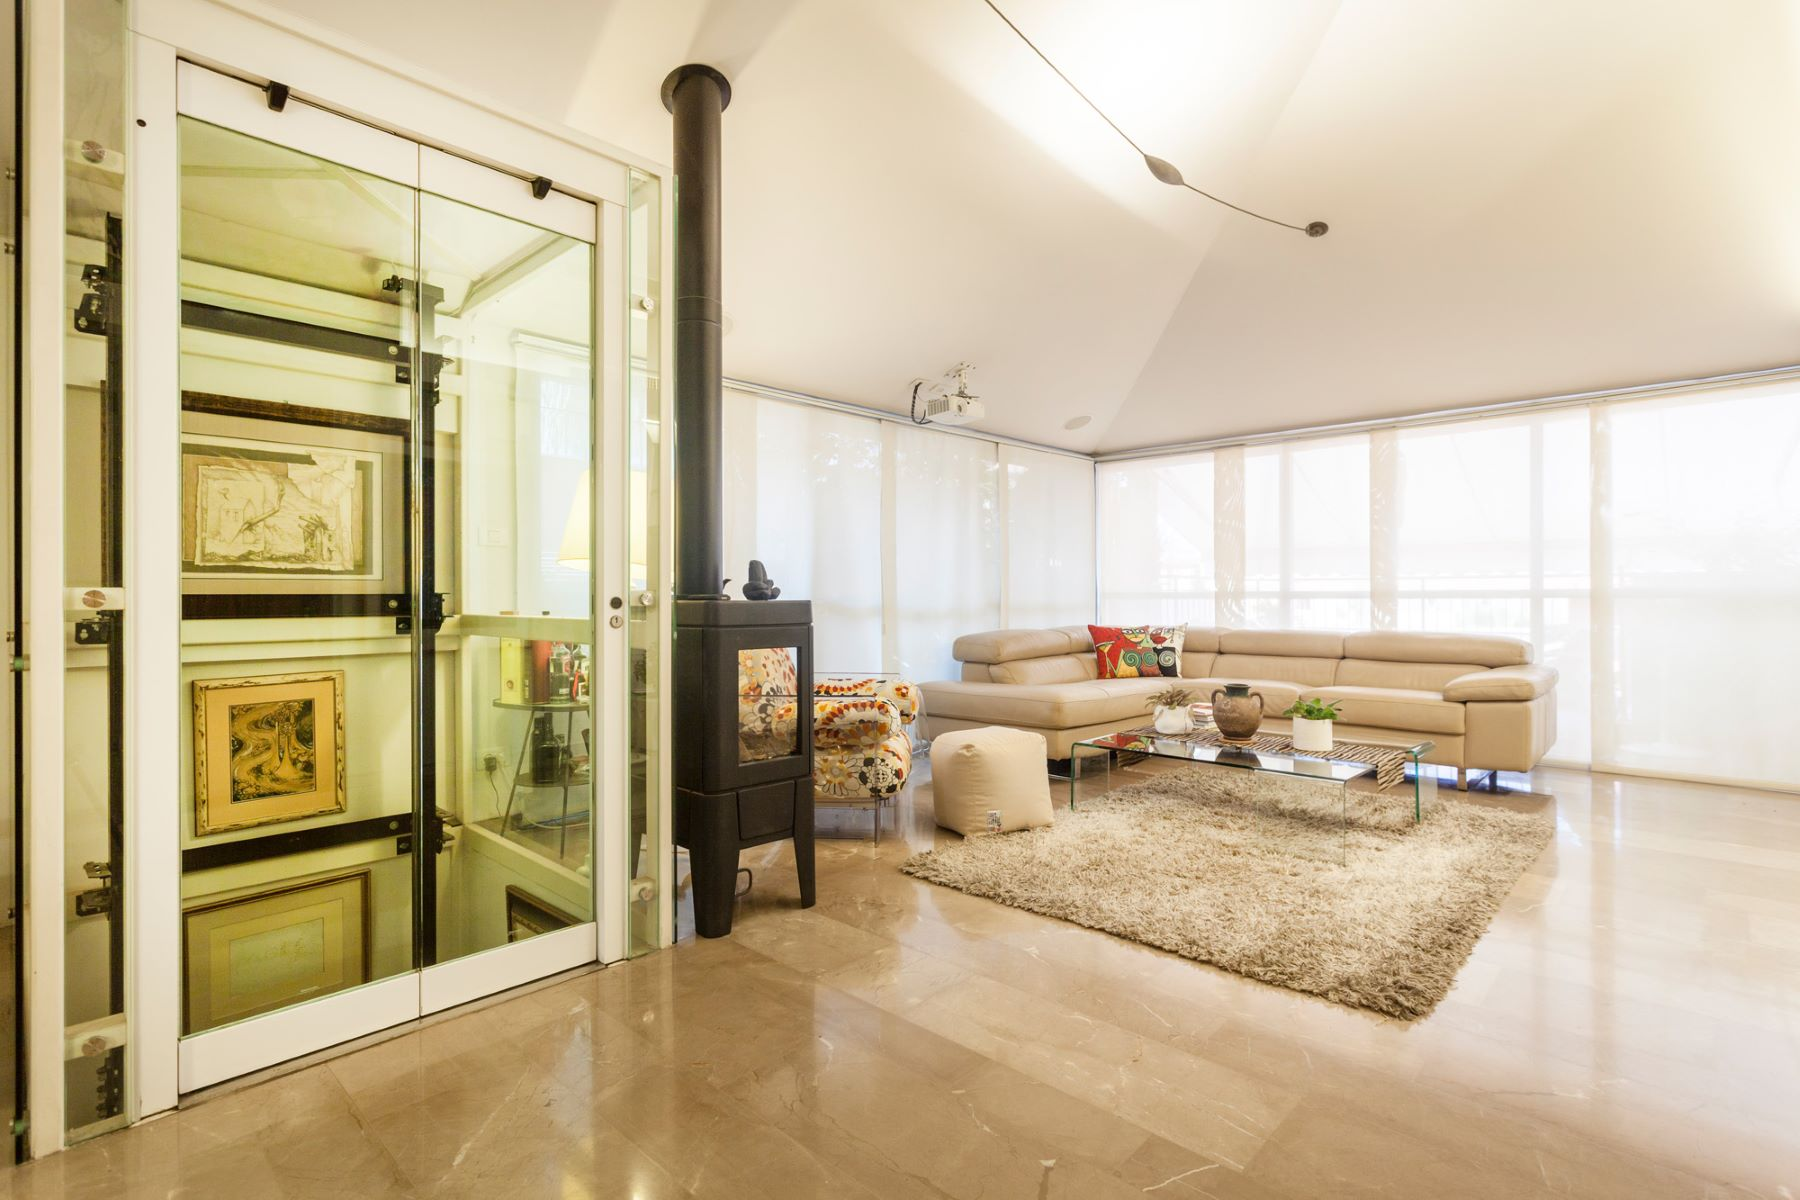 Additional photo for property listing at Unique Elegant Duplex in the Maronite Quarter Jaffa, Israel Israel